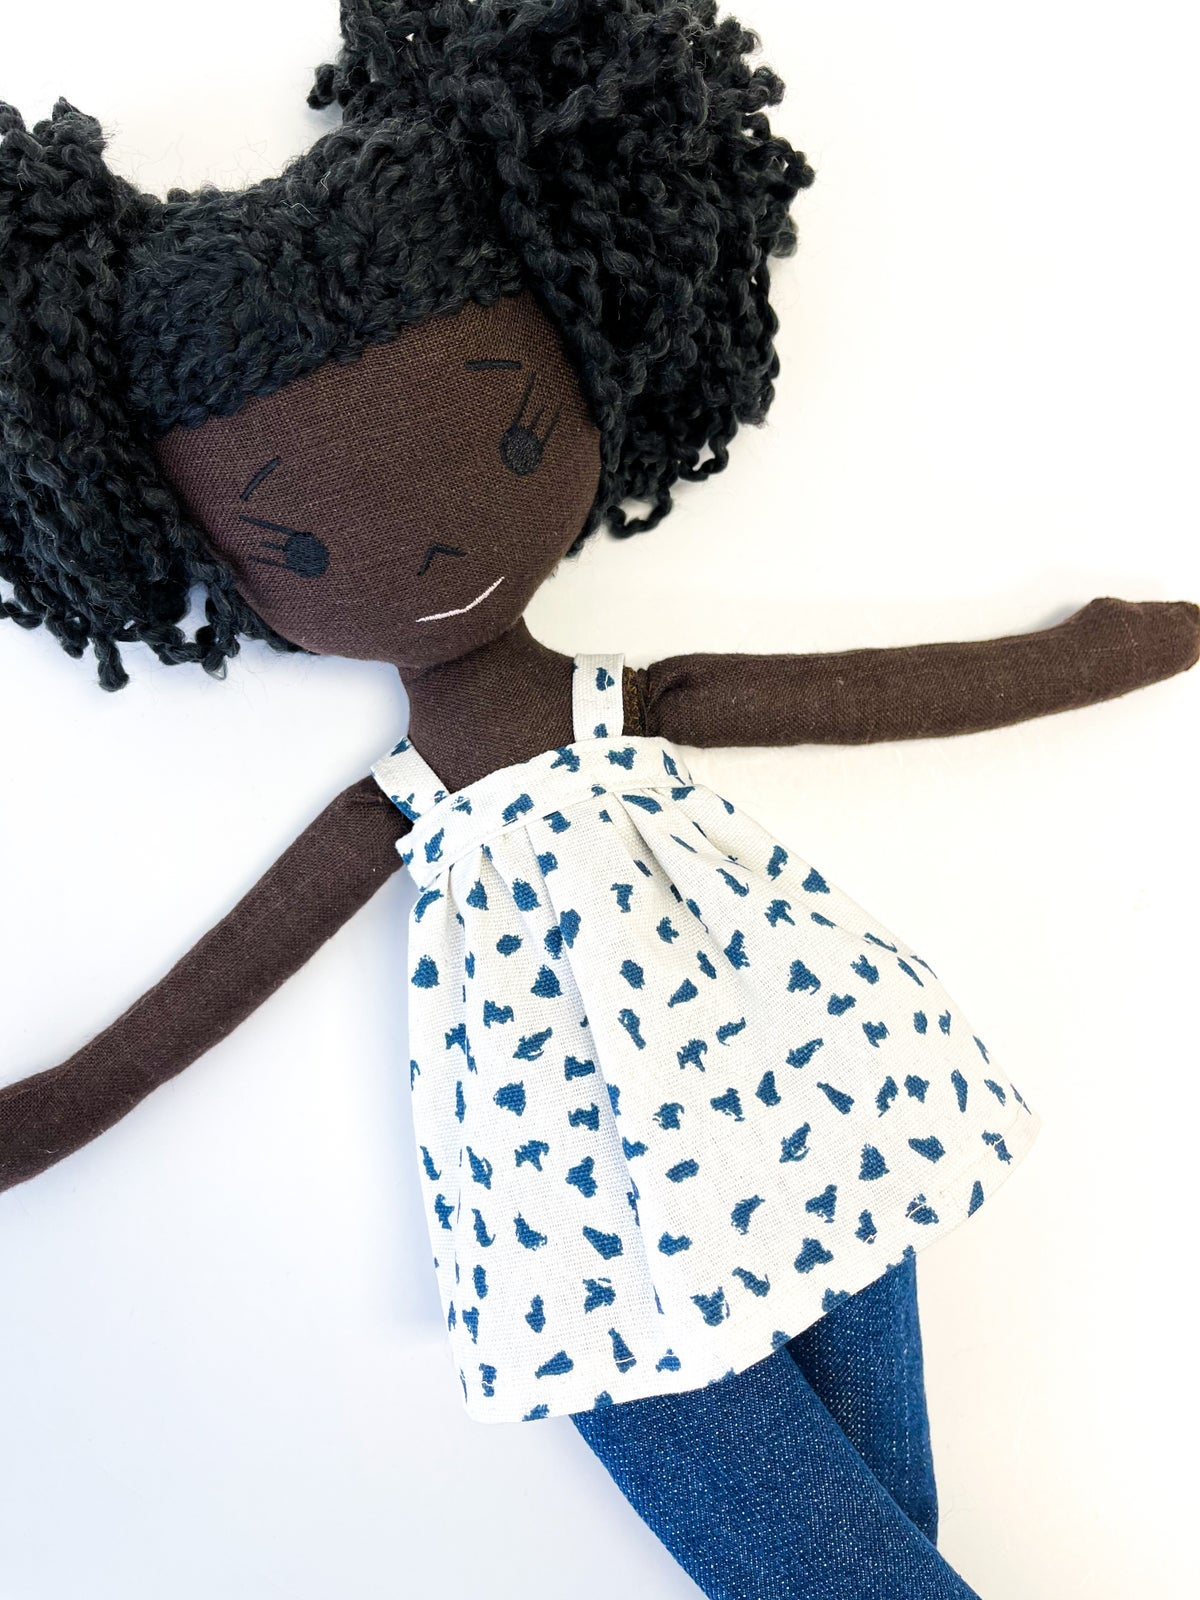 Emi Handmade Linen Doll (THIS ITEM WILL SHIP ON OR BEFORE OCTOBER 10th)